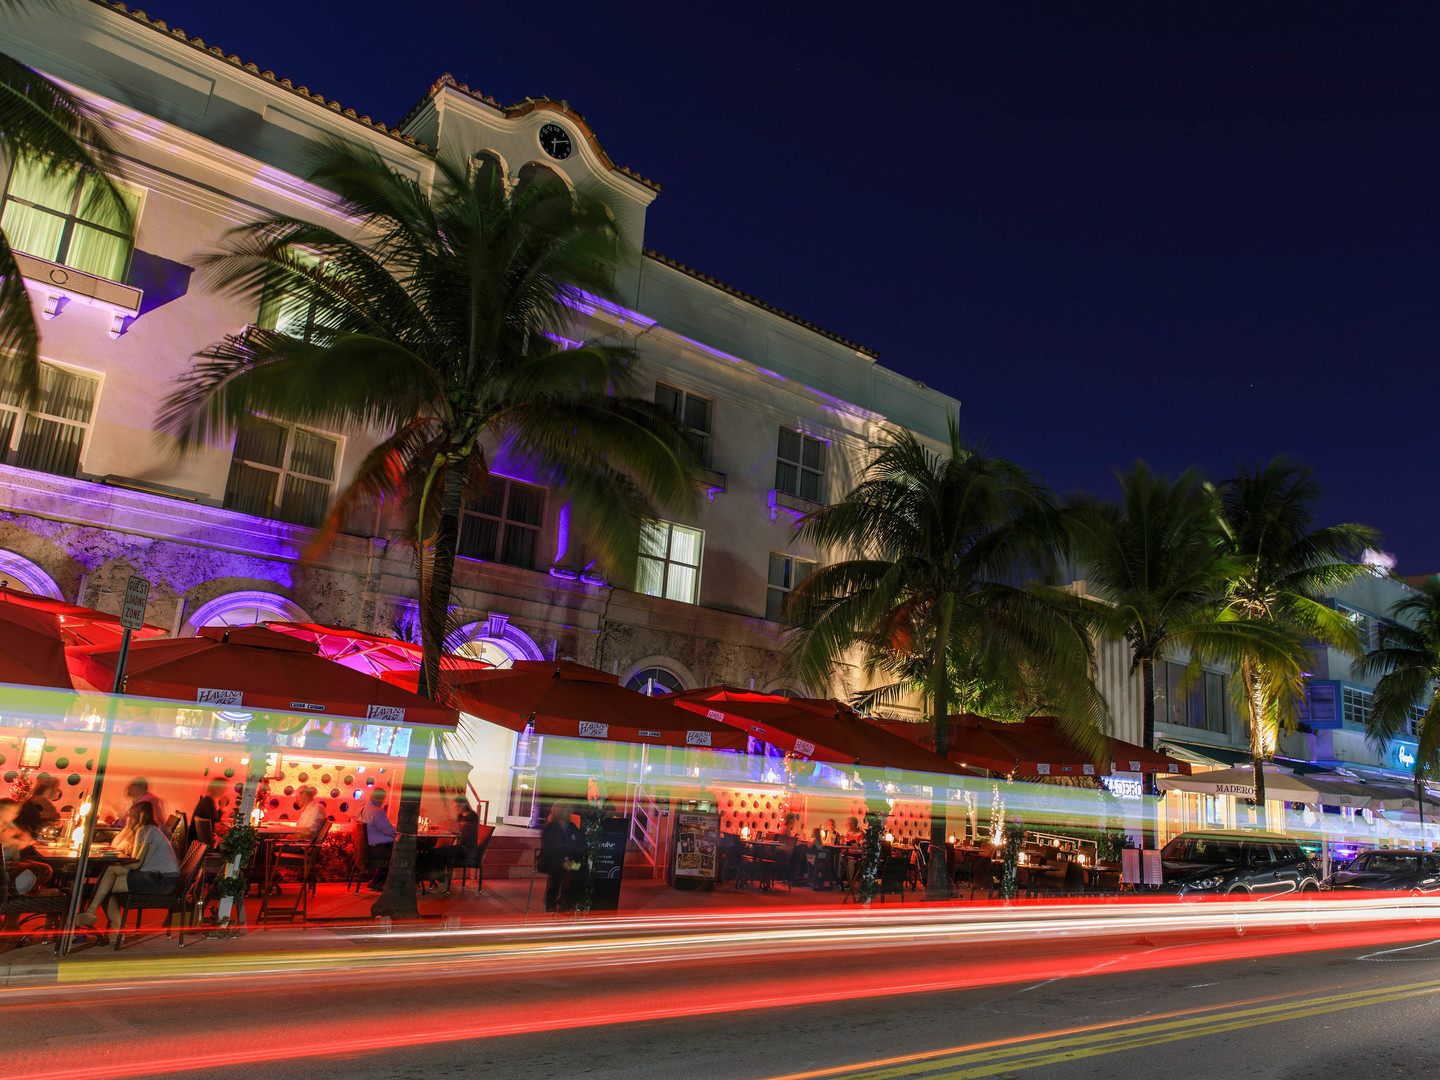 Marriott Vacation Club Pulse<span class='trademark'>®</span>, South Beach Resort Entrance Street View. Marriott Vacation Club Pulse<span class='trademark'>®</span>, South Beach is located in Miami Beach, Florida United States.